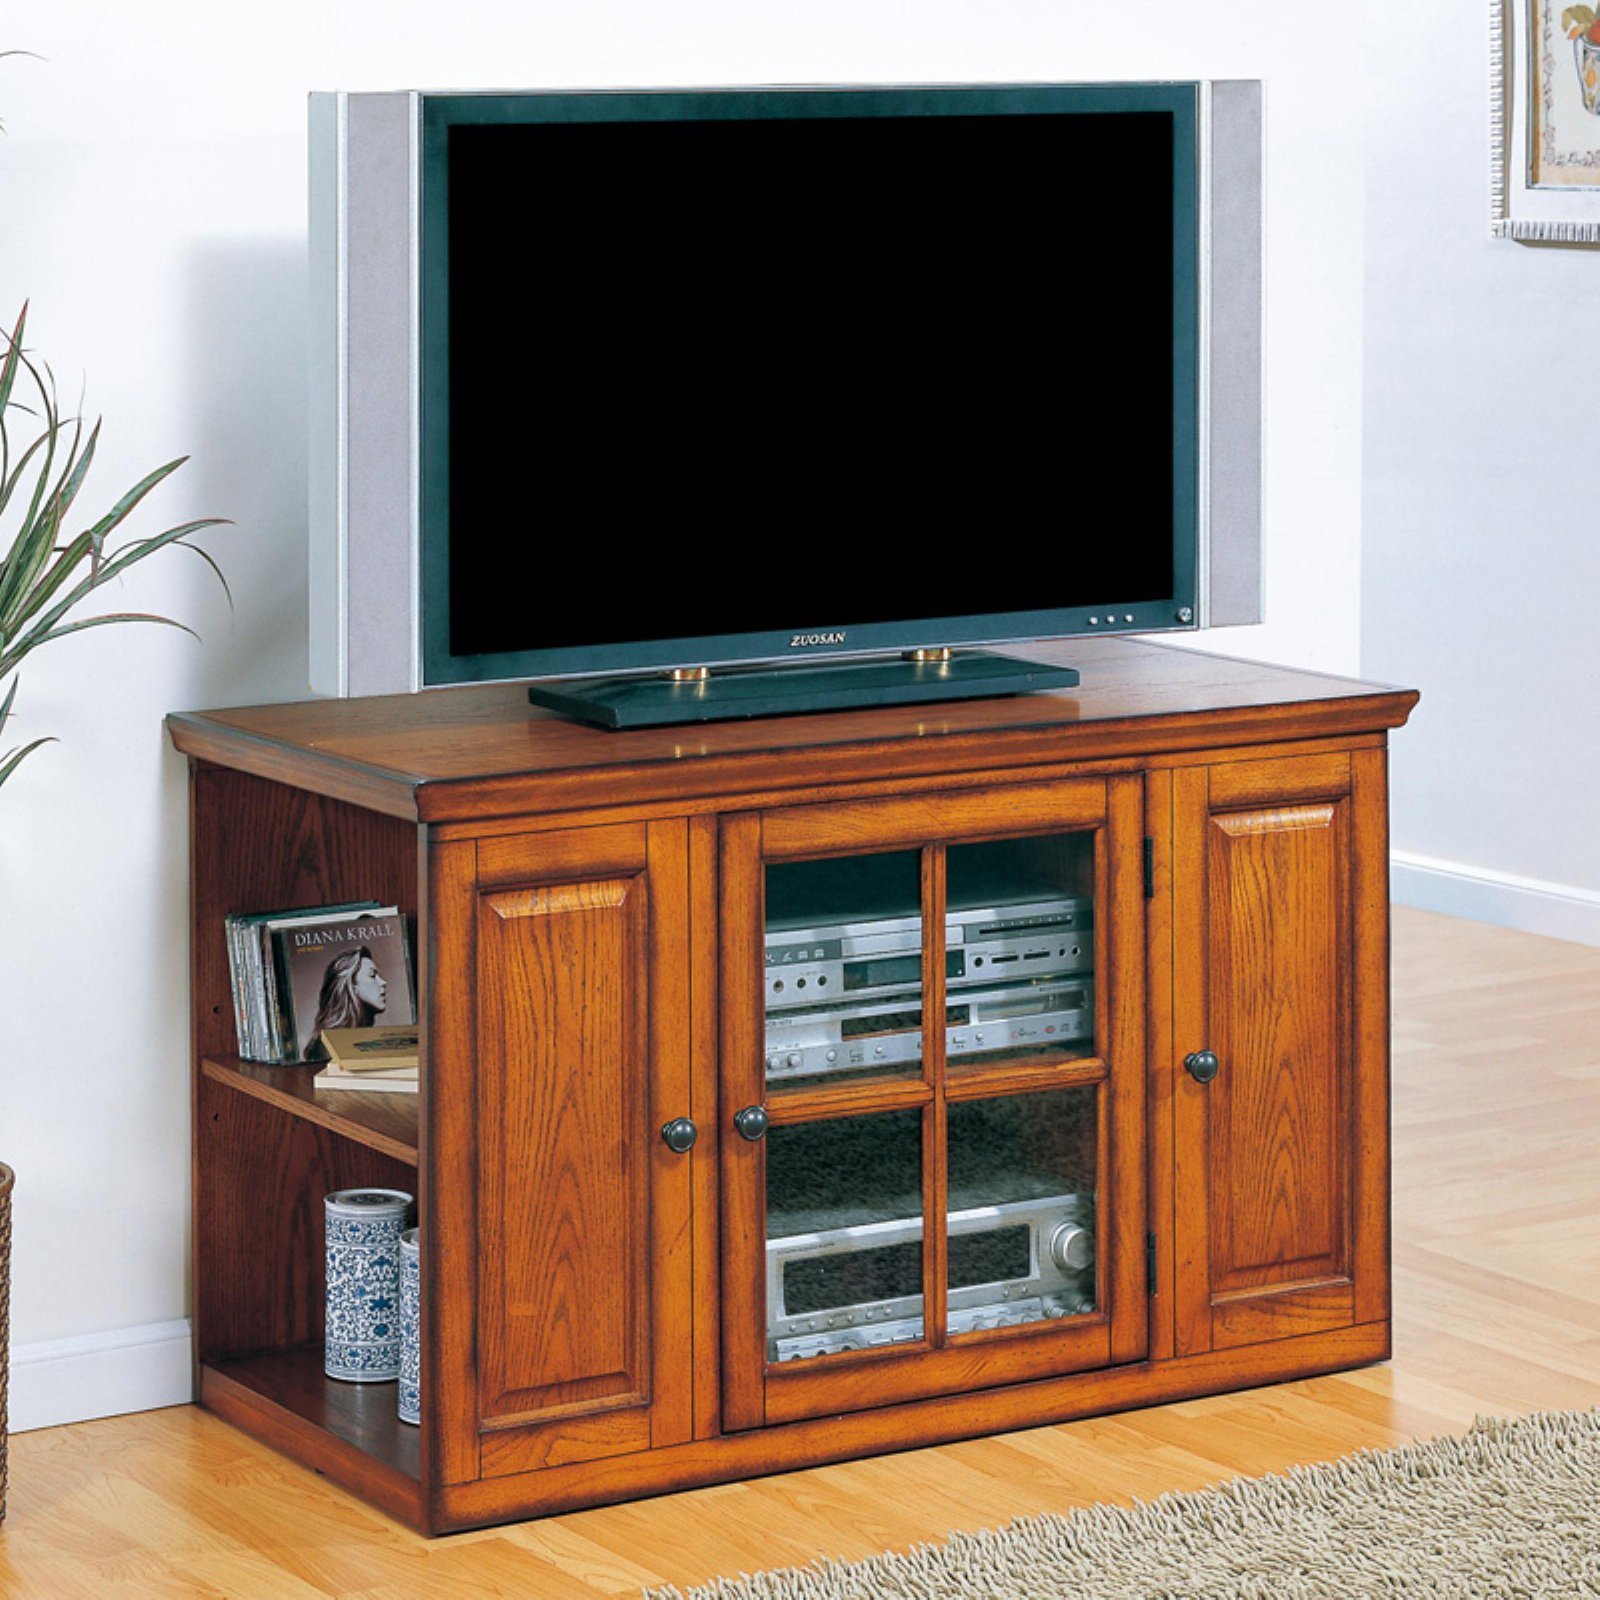 Leick 88159 Riley Holliday Oak 42 in. TV Console by Leick Furniture